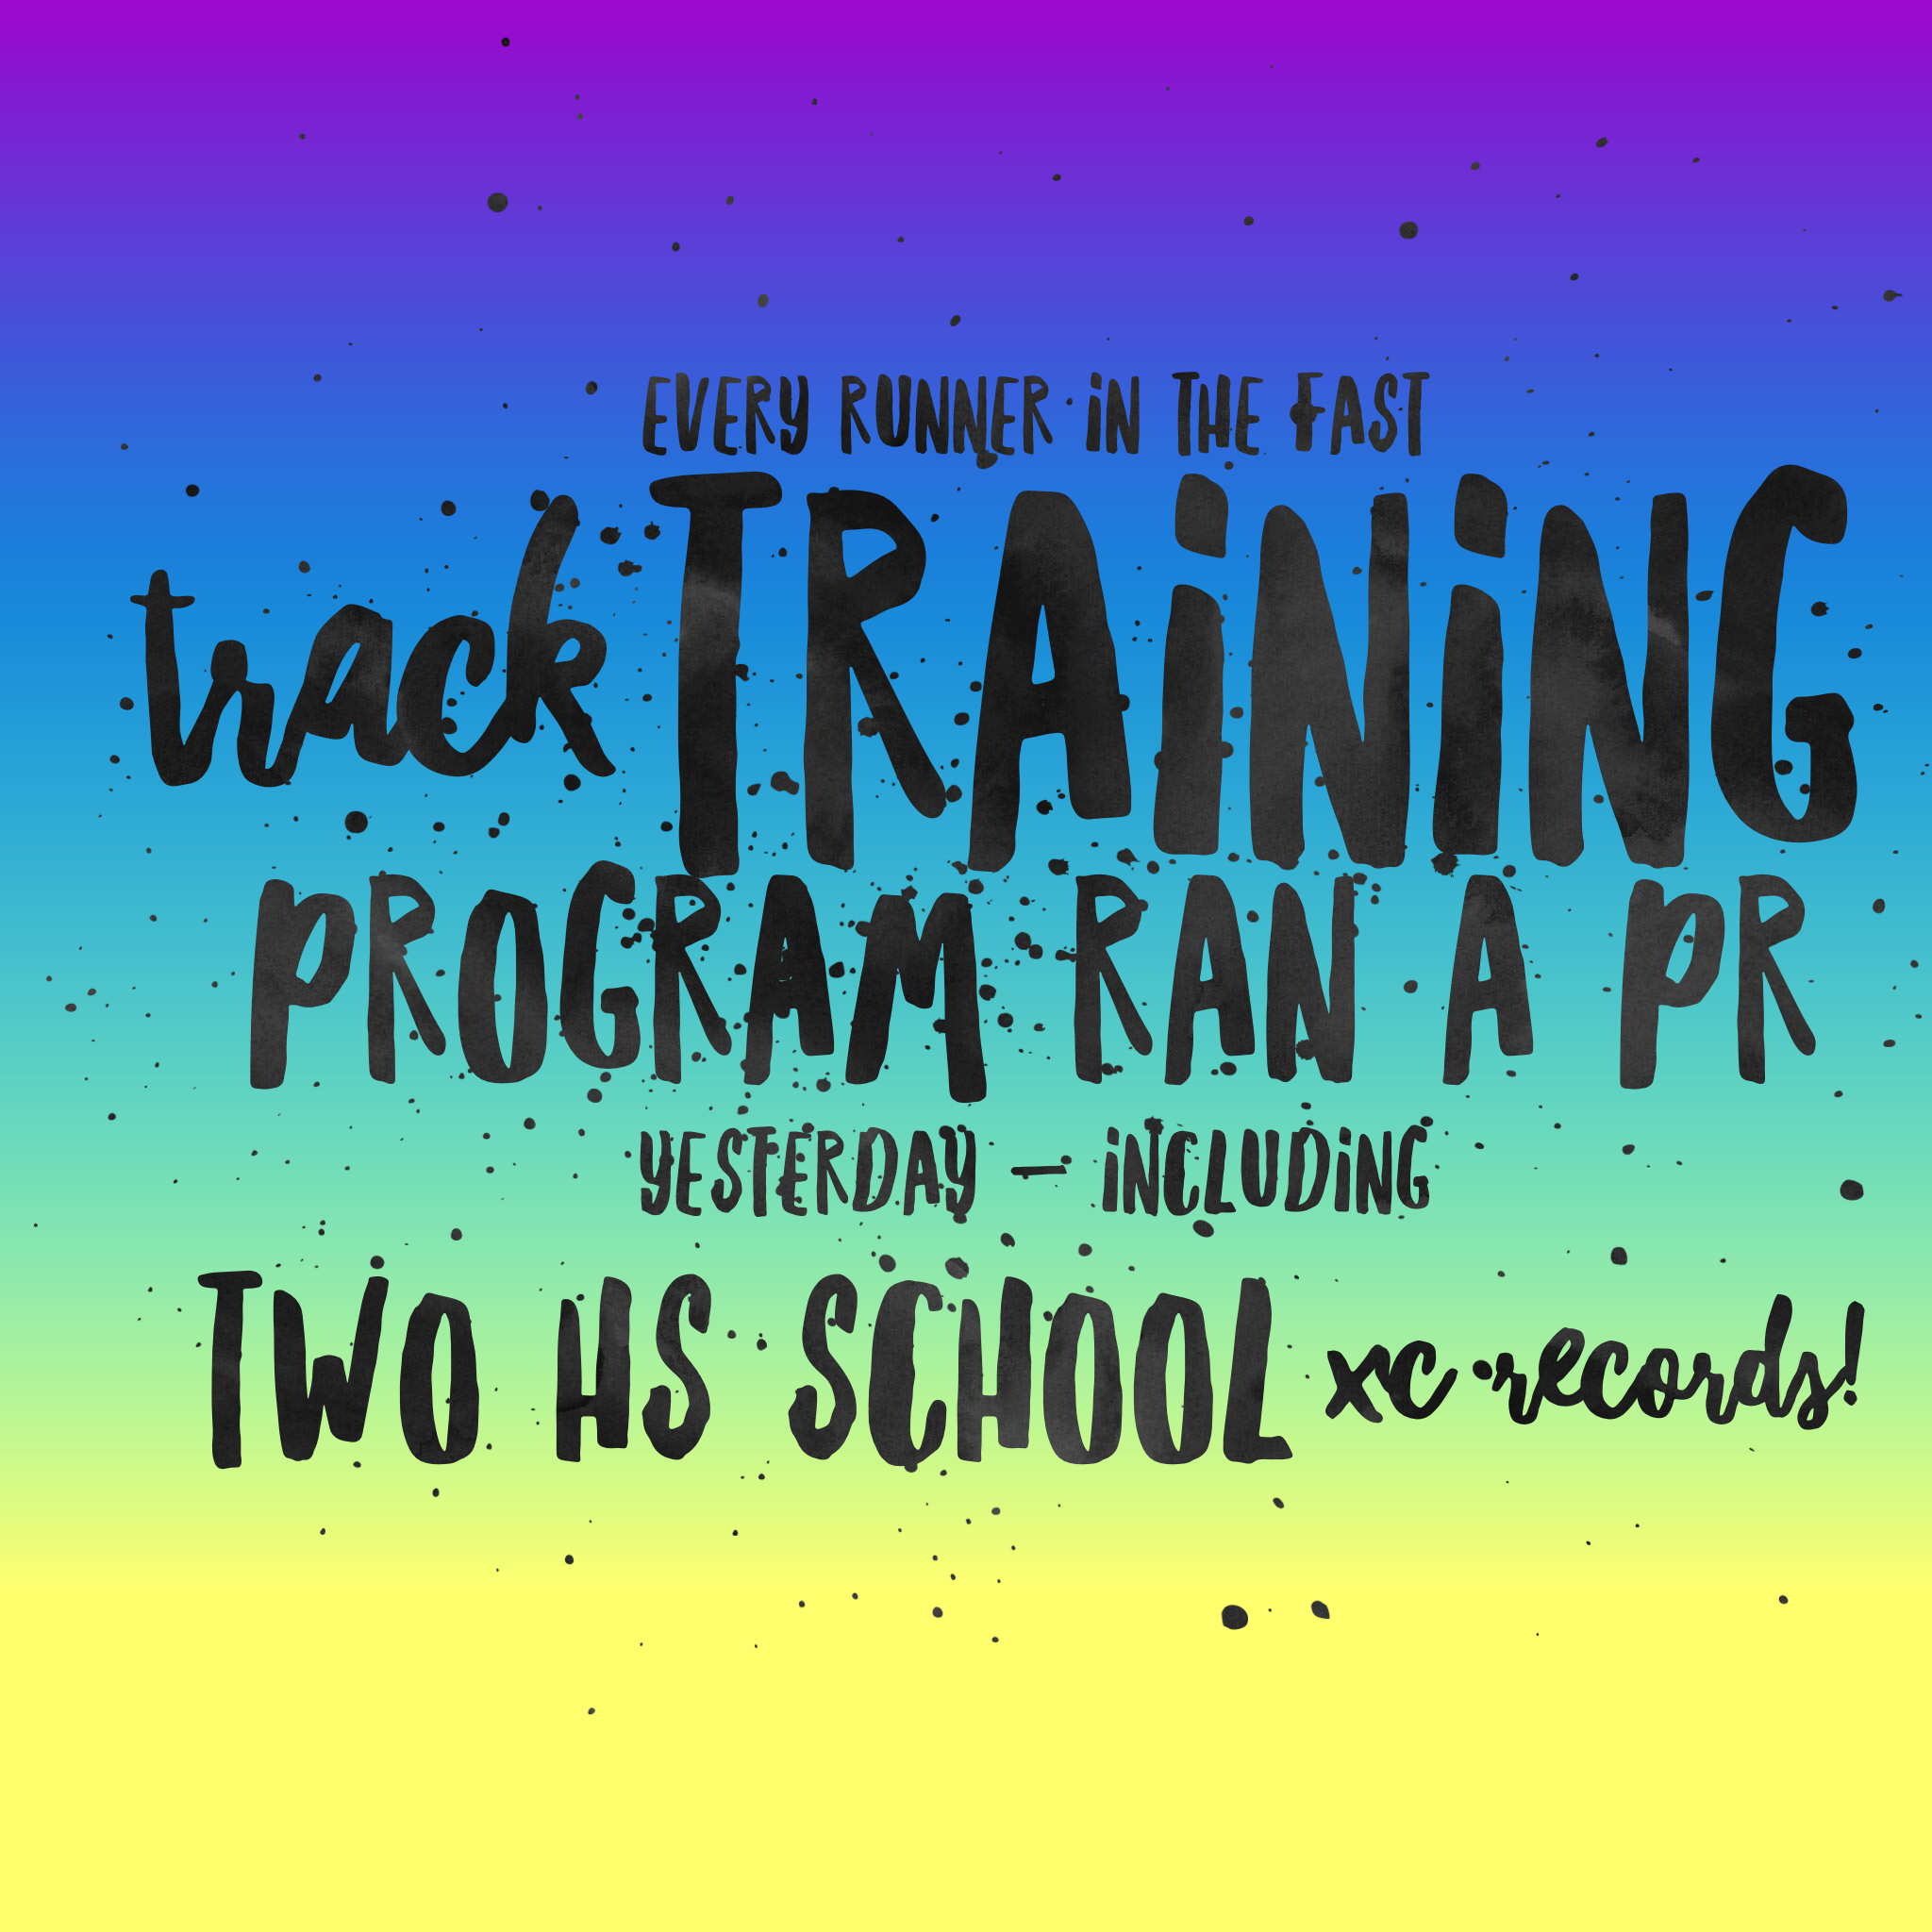 - Each and every participating athlete in the Fast Track Recruiting Training Program established a new personal record yesterday. The athletes who ran on the same course at the same meet yesterday as they did last year had an average improvement rate of 56 seconds! In addition, our athletes established two new varsity XC school records. Not only are we helping student-athletes get into schools they never thought possible while getting significant scholarship money, we are also helping current high school cross country runners RUN FASTER!